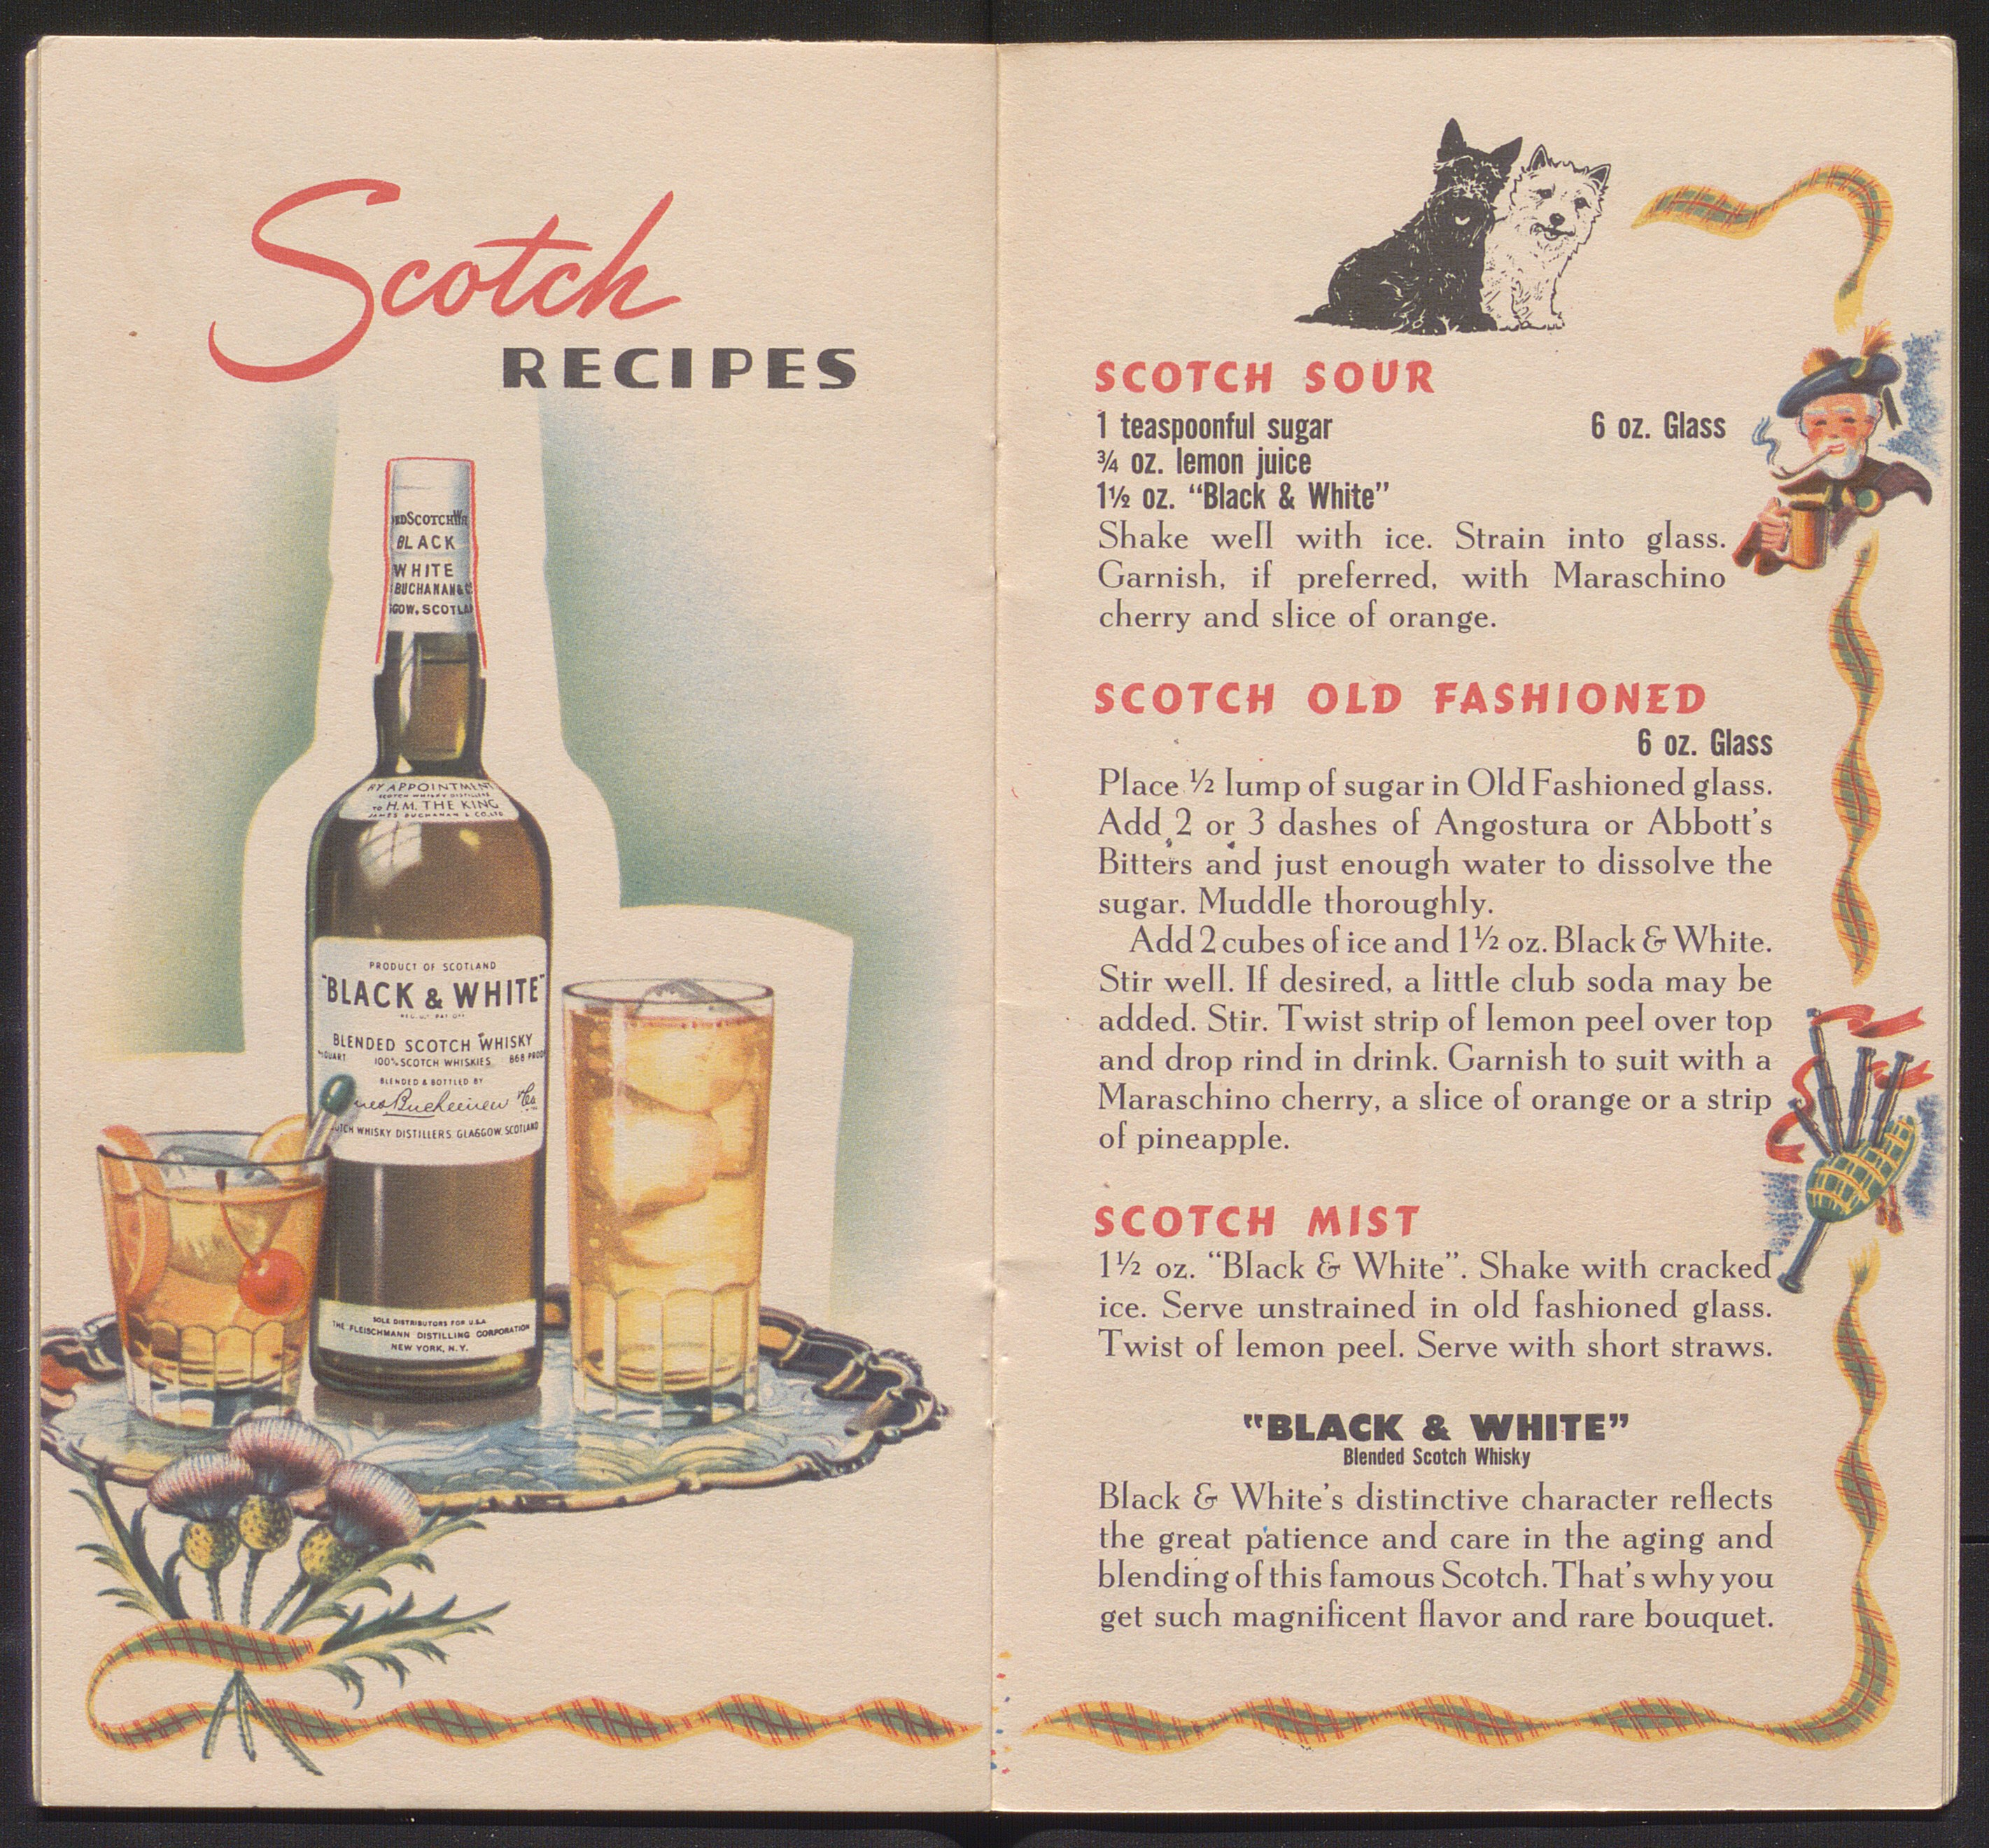 Pamphlet open to pages with color illustrations and recipes promoting scotch.